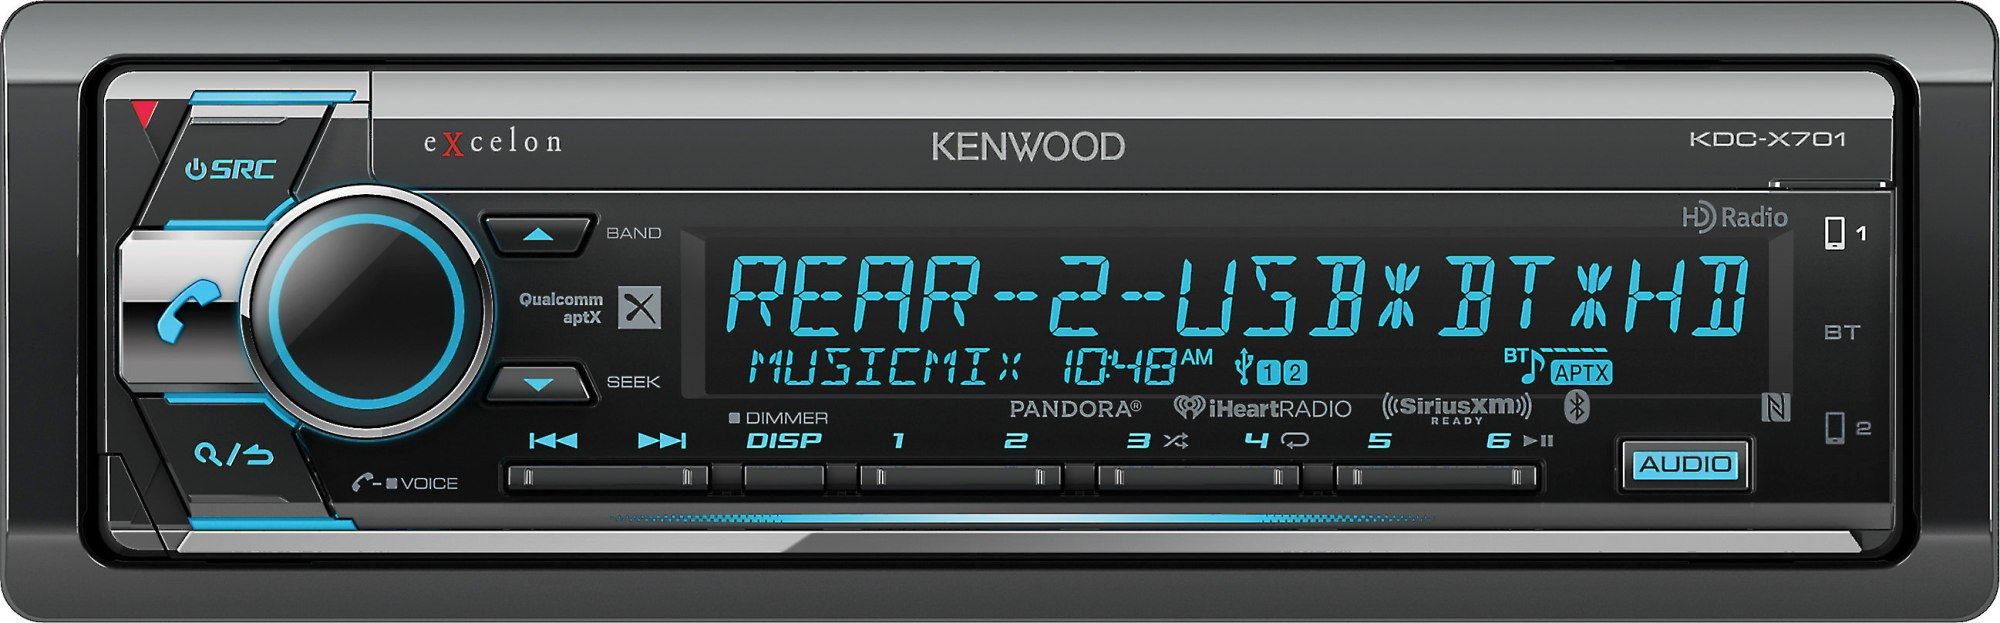 hight resolution of kenwood excelon kdc x994 wiring diagram